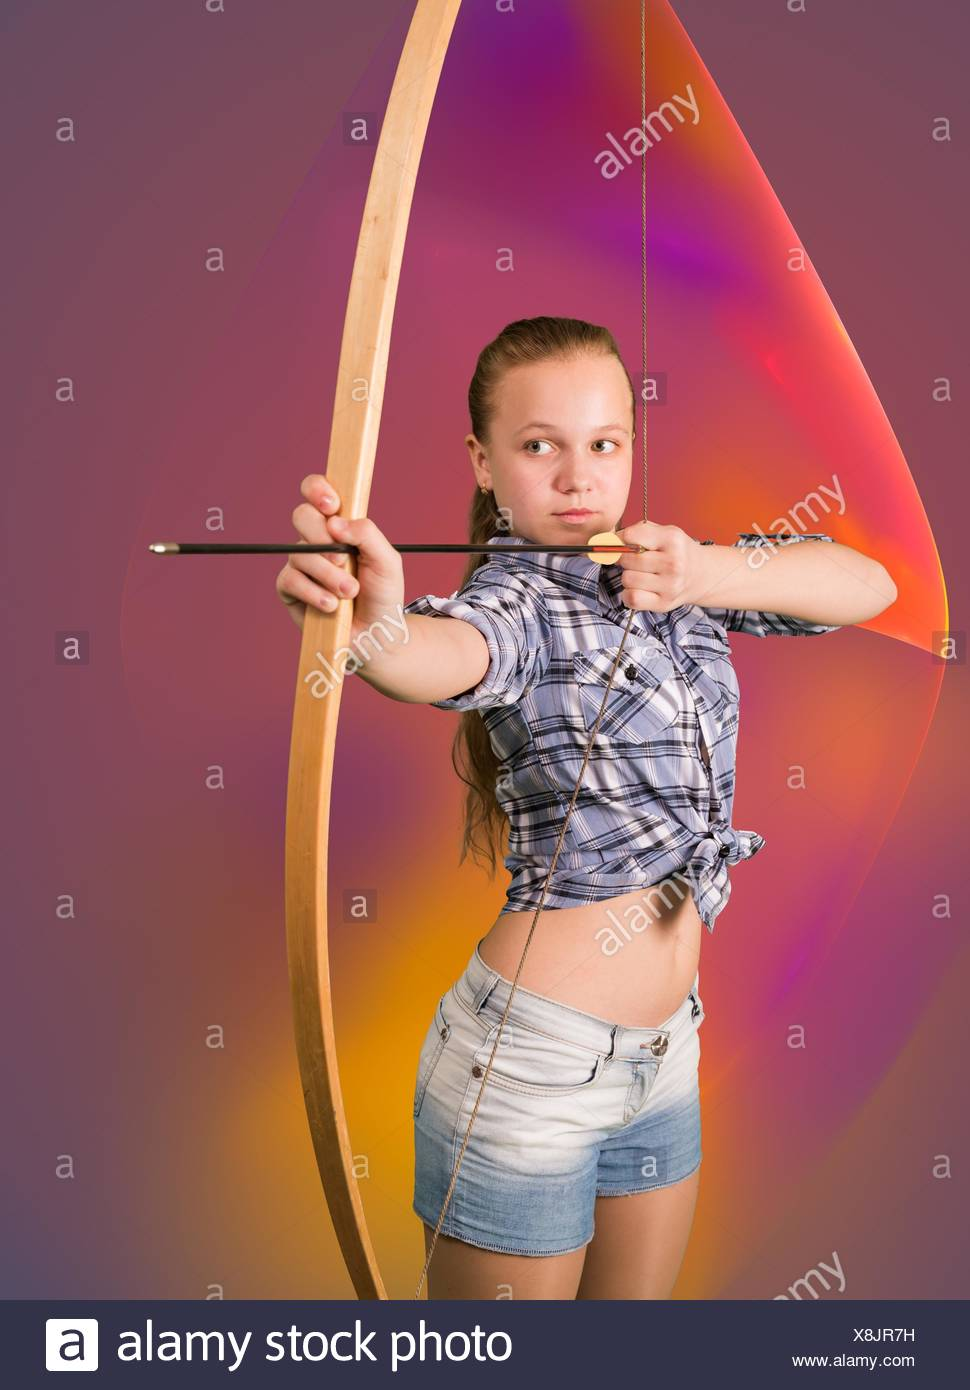 Teen girl practicing archery standing on abstract background. - Stock Image